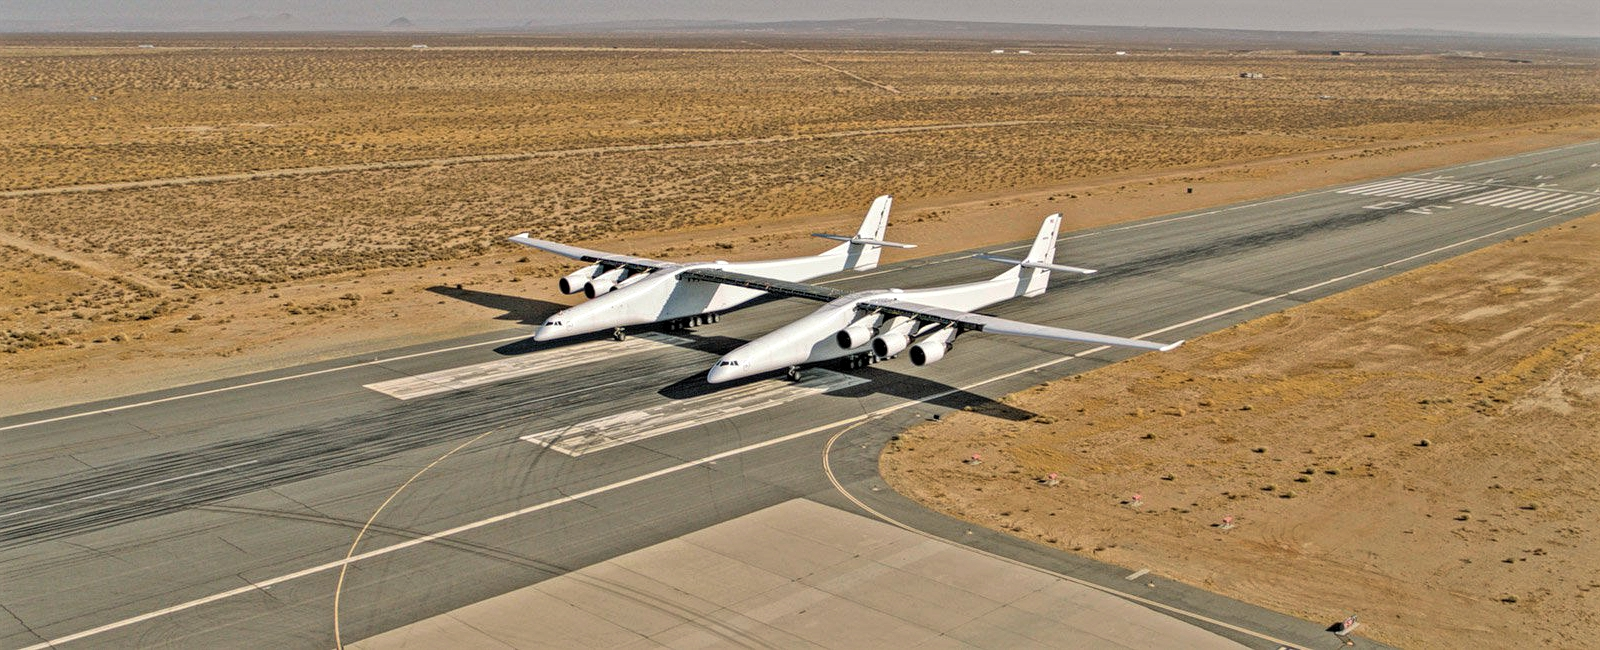 Stratolaunch The Widest Aircraft in The World Ready Takeoff